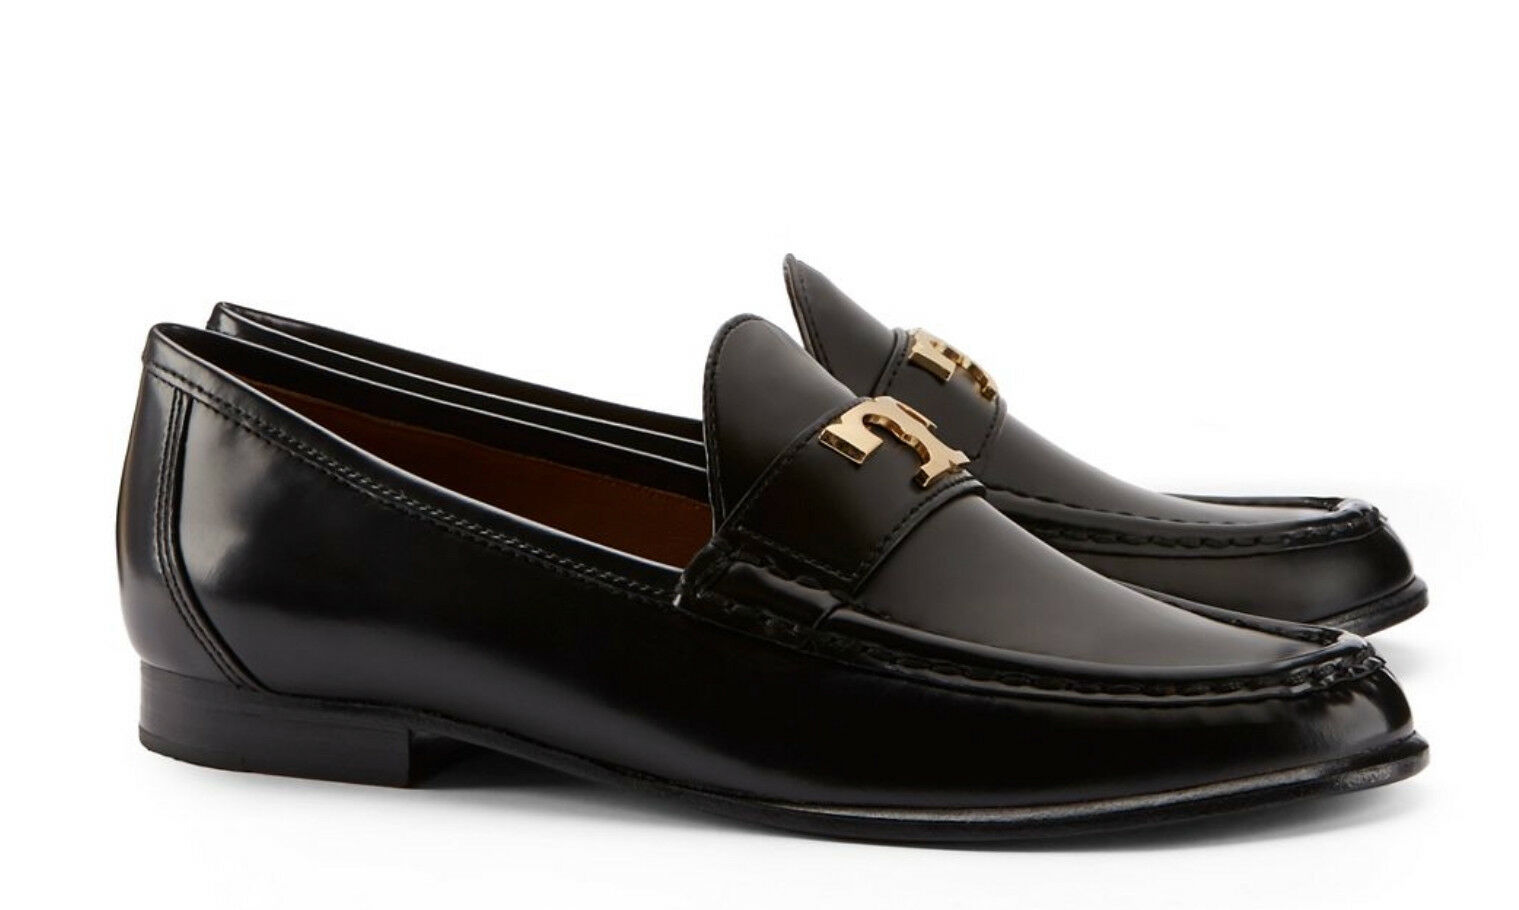 TORY BURCH Townsend Loafers Glossy Black 7.5 NIB